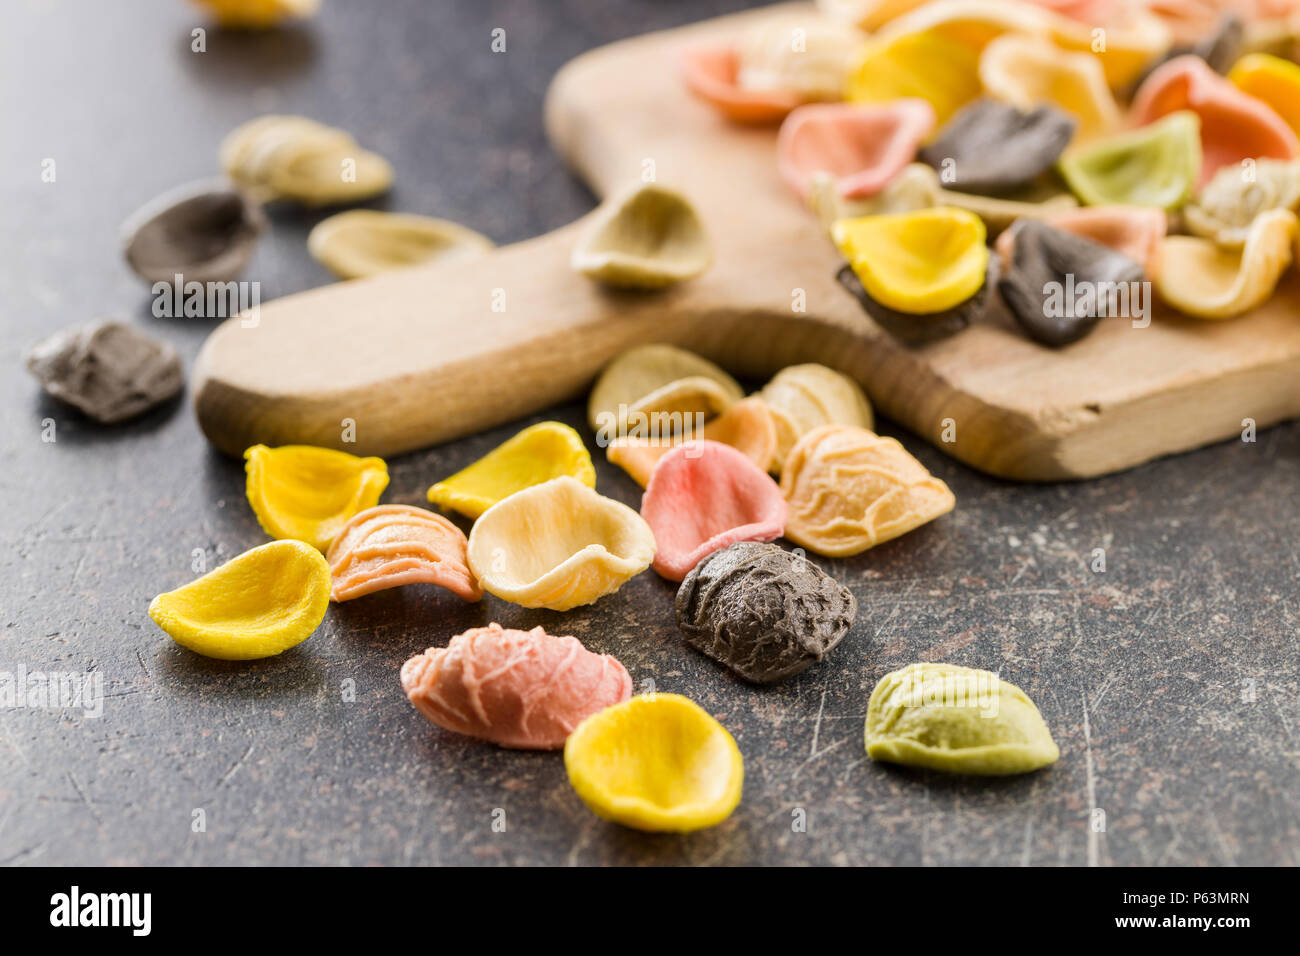 Italian rainbow pasta on old kitchen table. - Stock Image